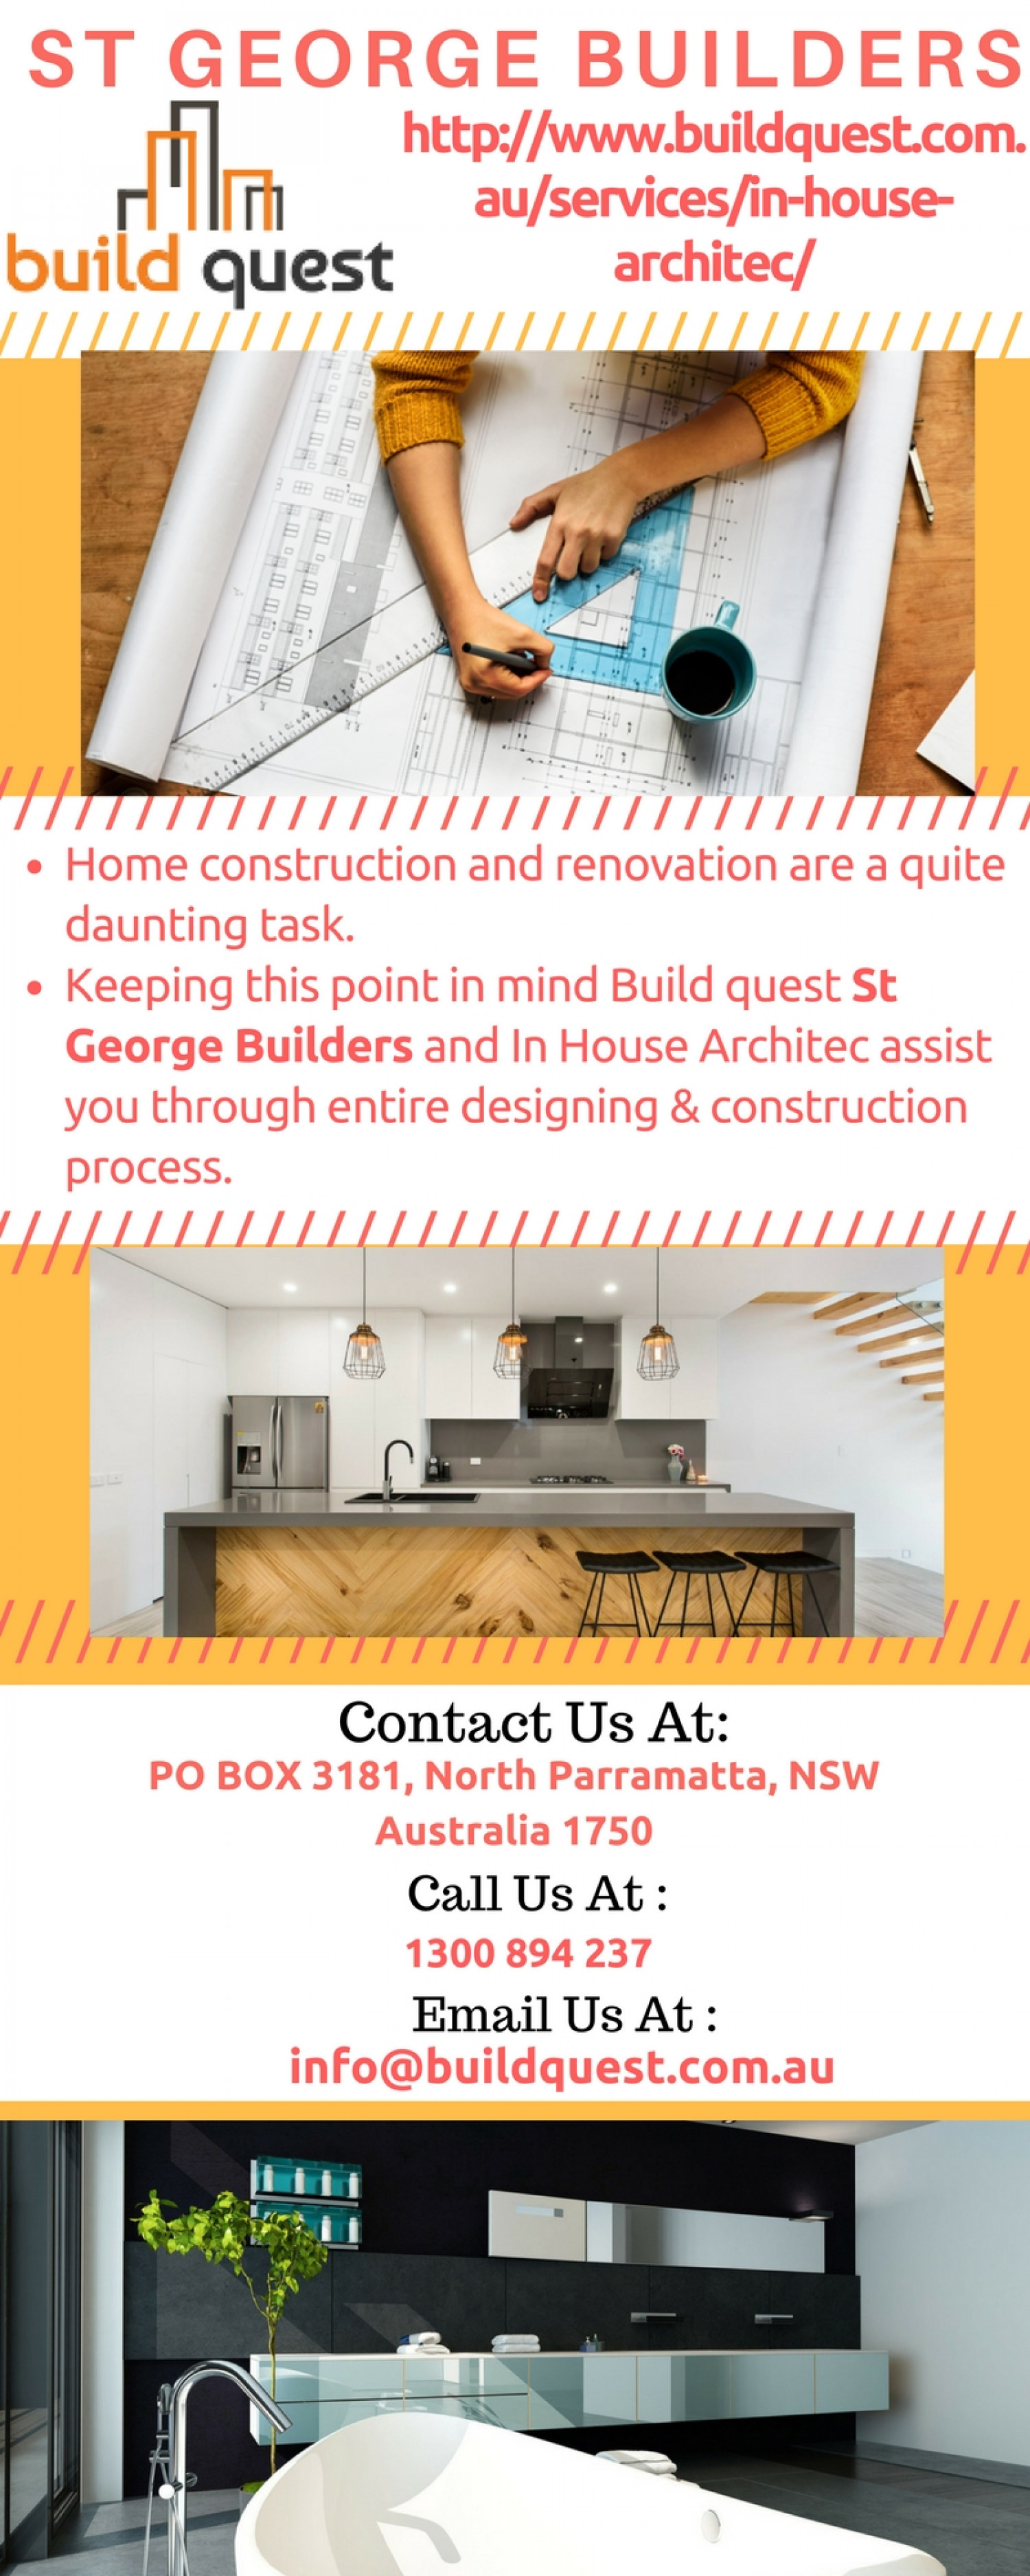 St George Builders Infographic